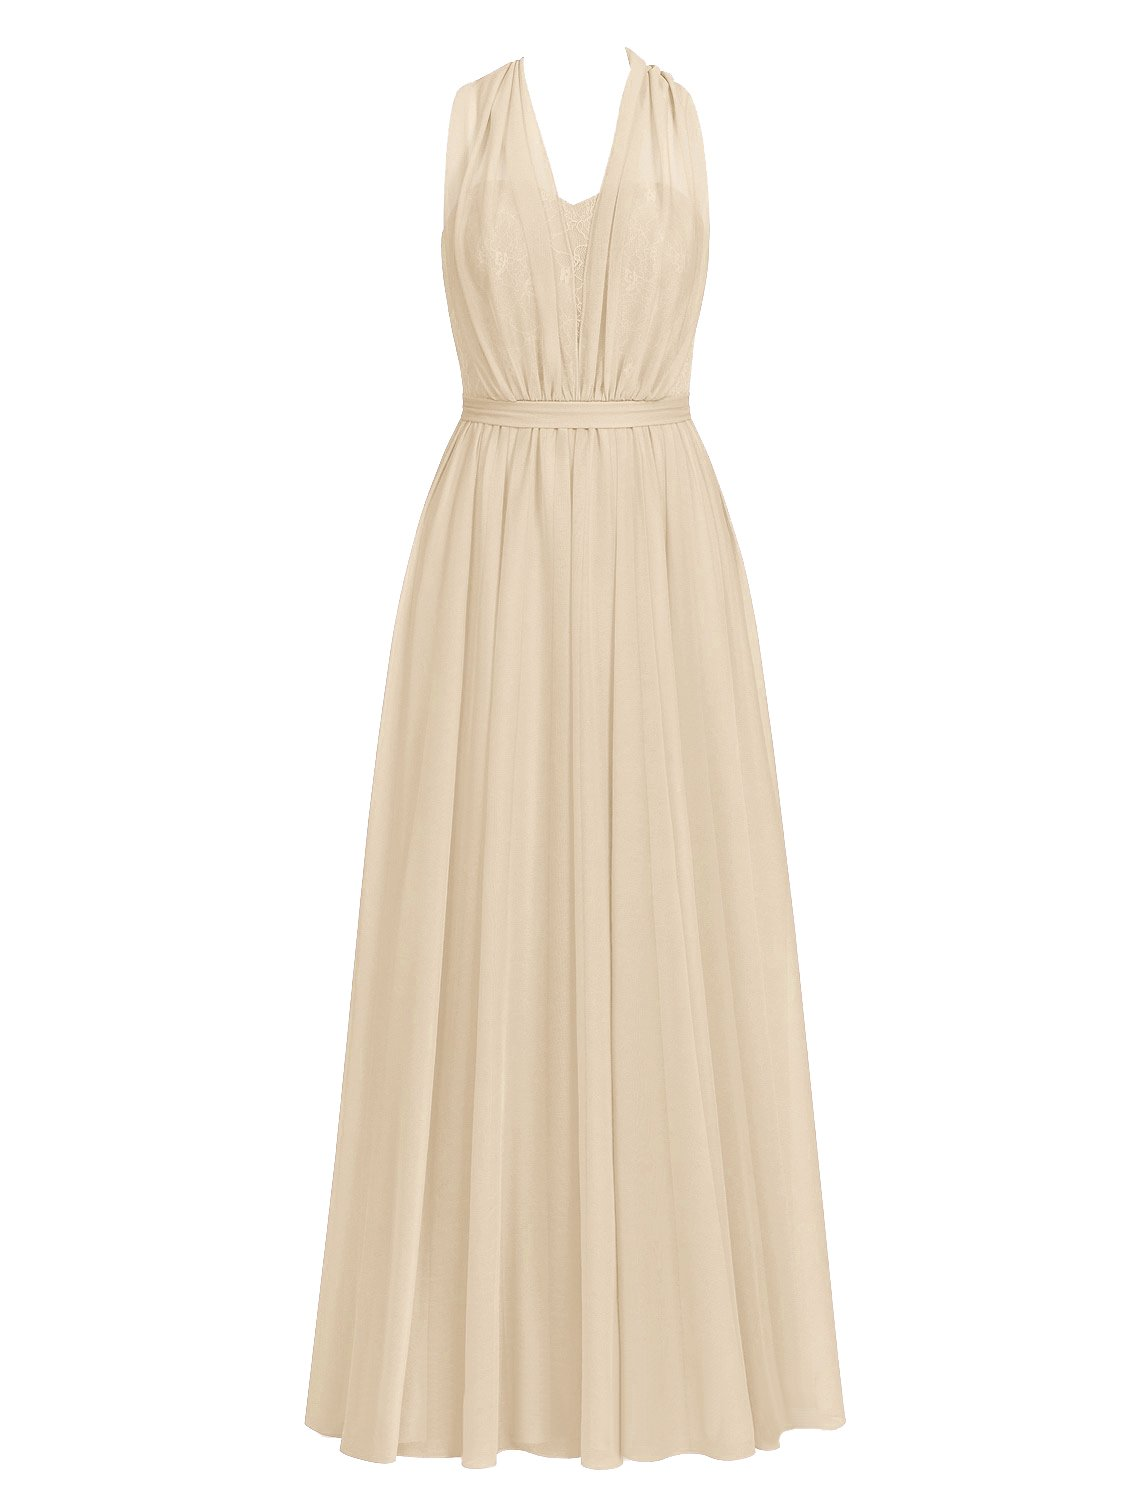 Cdress Bridesmaid Dresses Long Chiffon Prom Dress Halter Convertible Lace Evening Gowns Champagne US 18W